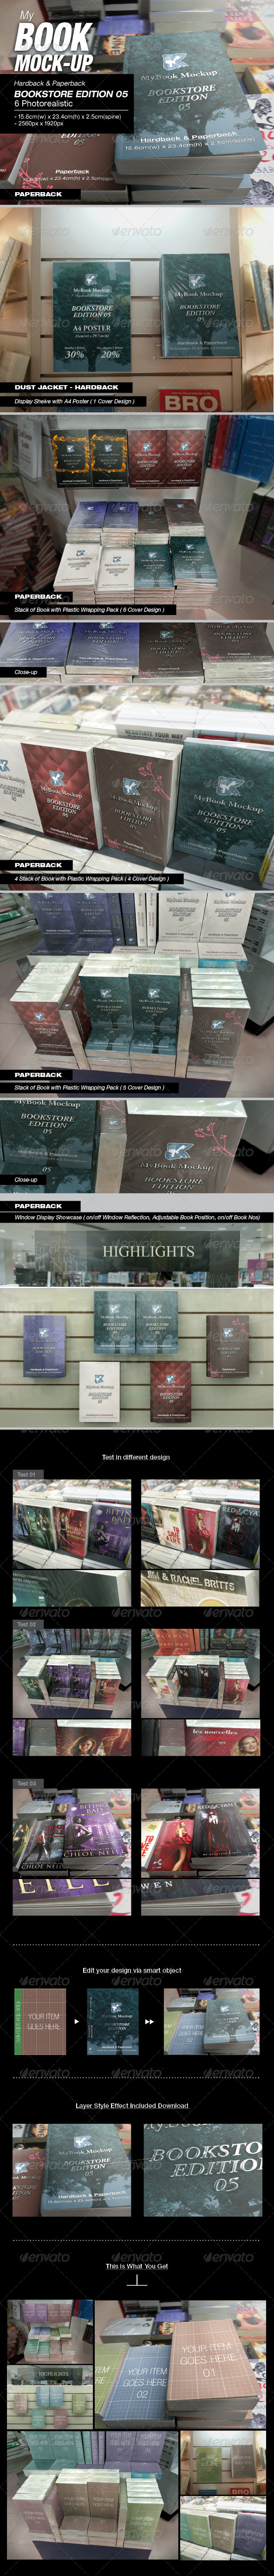 GraphicRiver MyBook Mock-up Bookstore Edition 05 8119884